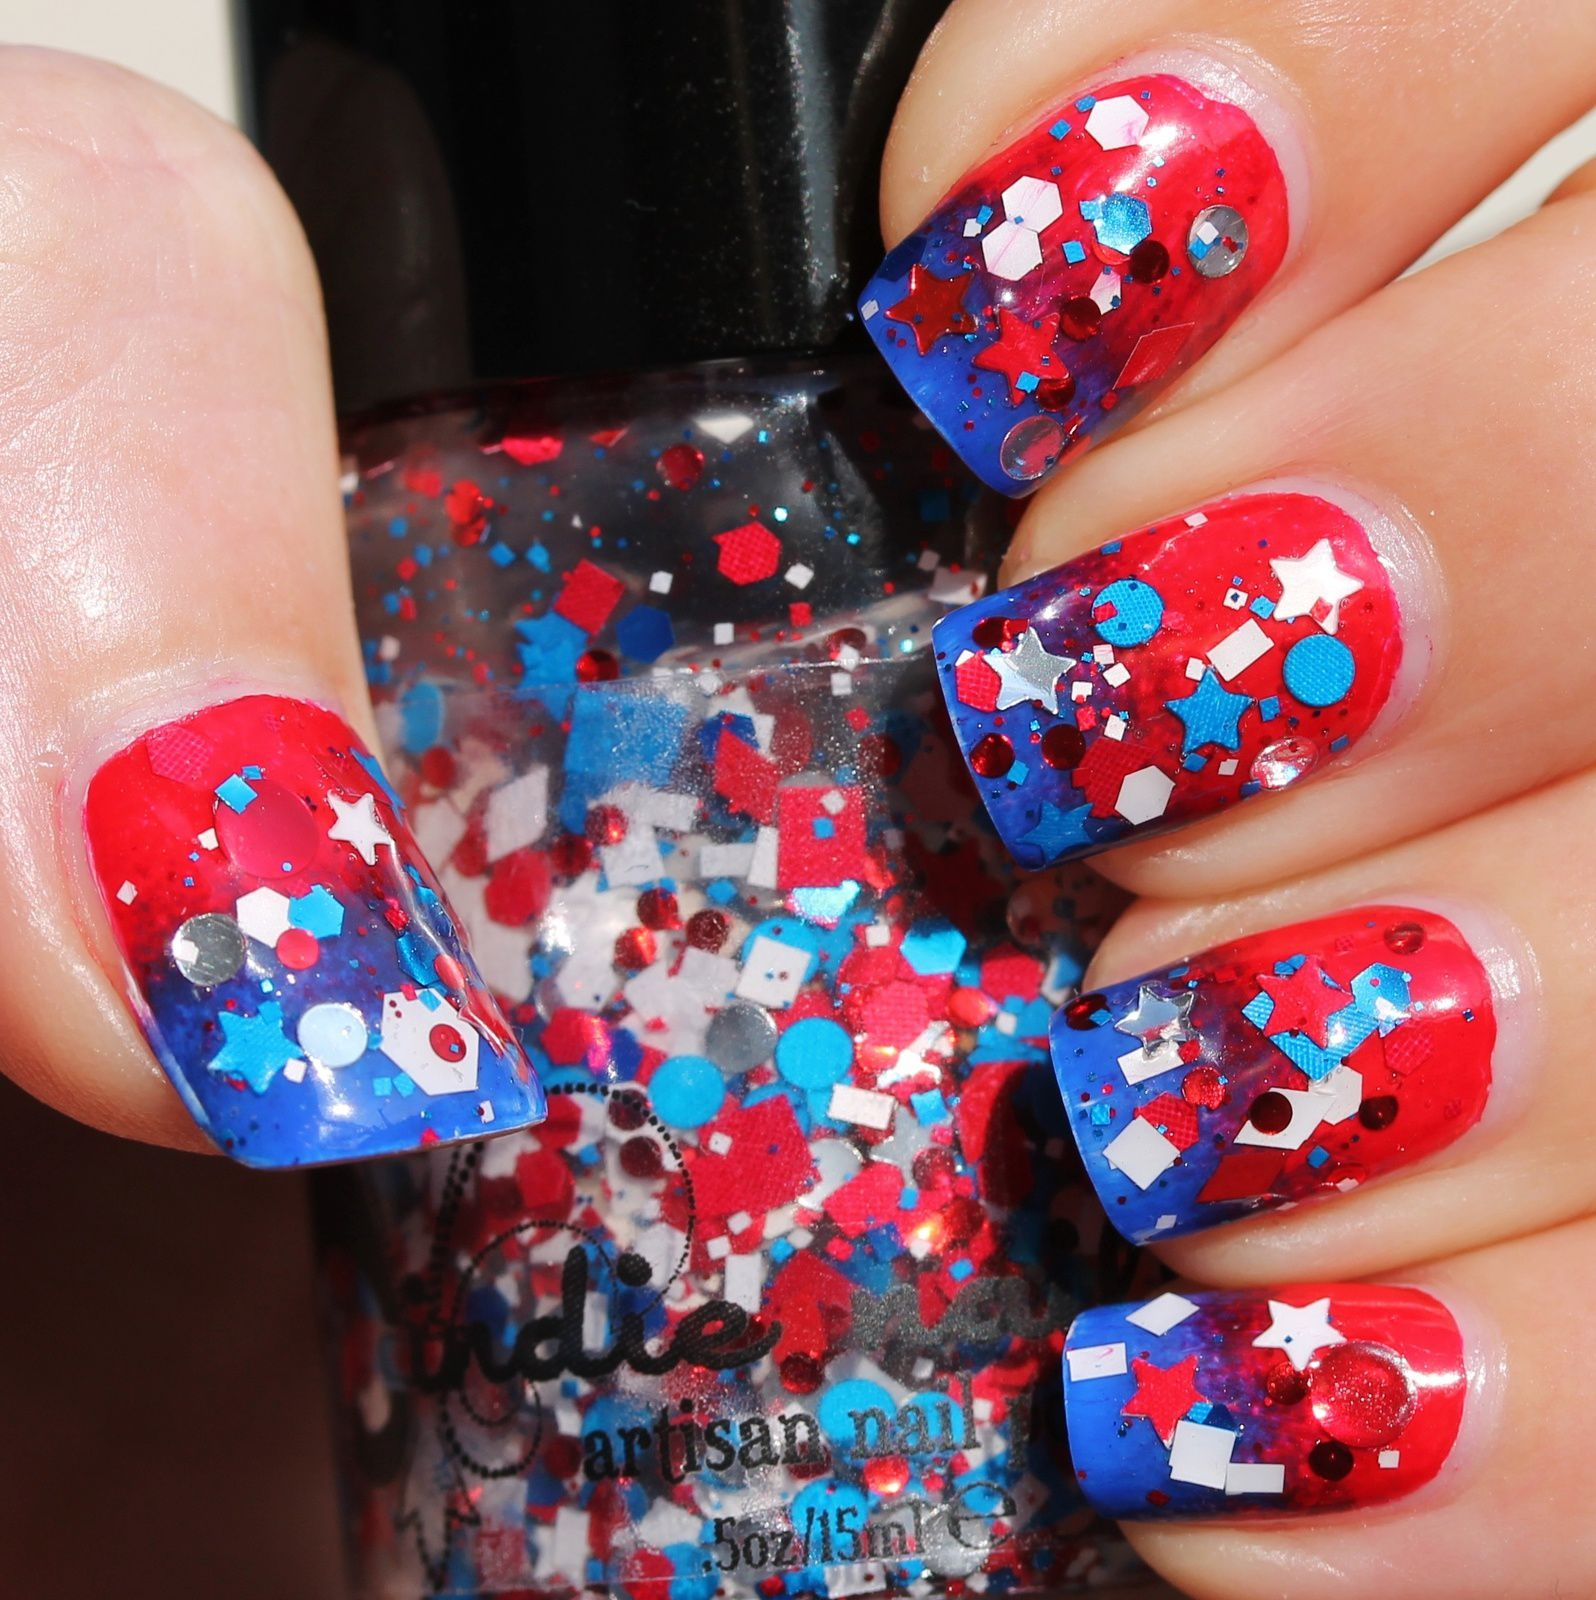 Dance Legend Peel-Off base coat / Wet & Wild 449C (white) / Sponge gradient with Nicole by OPI Challenge Red-y & Sinful Colors Endless Blue / Jindie Nails Jindie-Pendence Glitter Topper / Poshe Top Coat